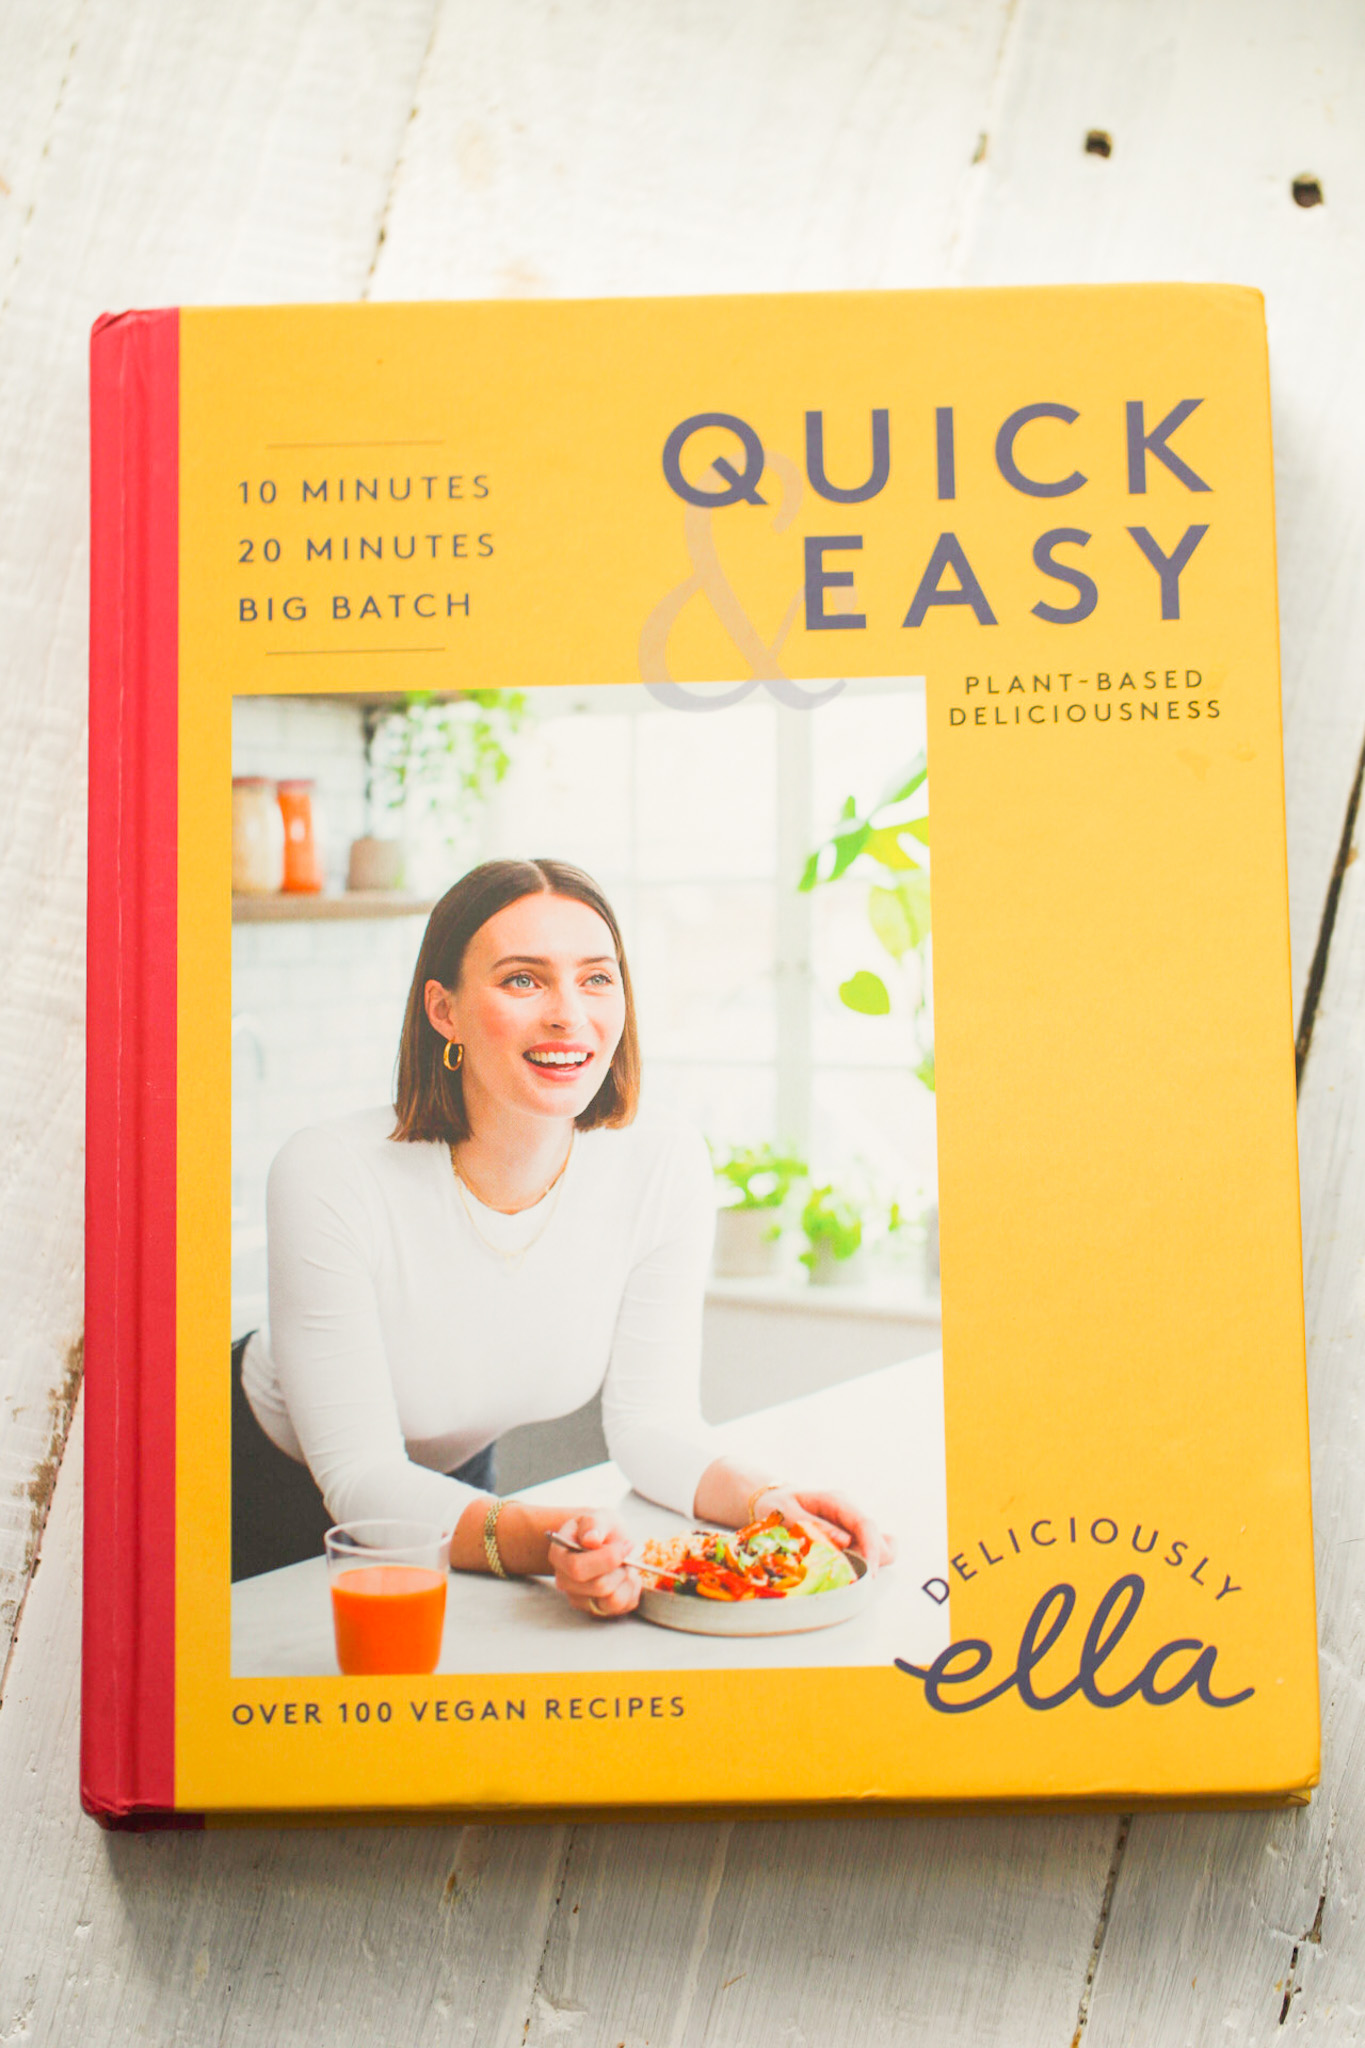 Quick & Easy Plant-Based Deliciousness by deliciously ella cookbook